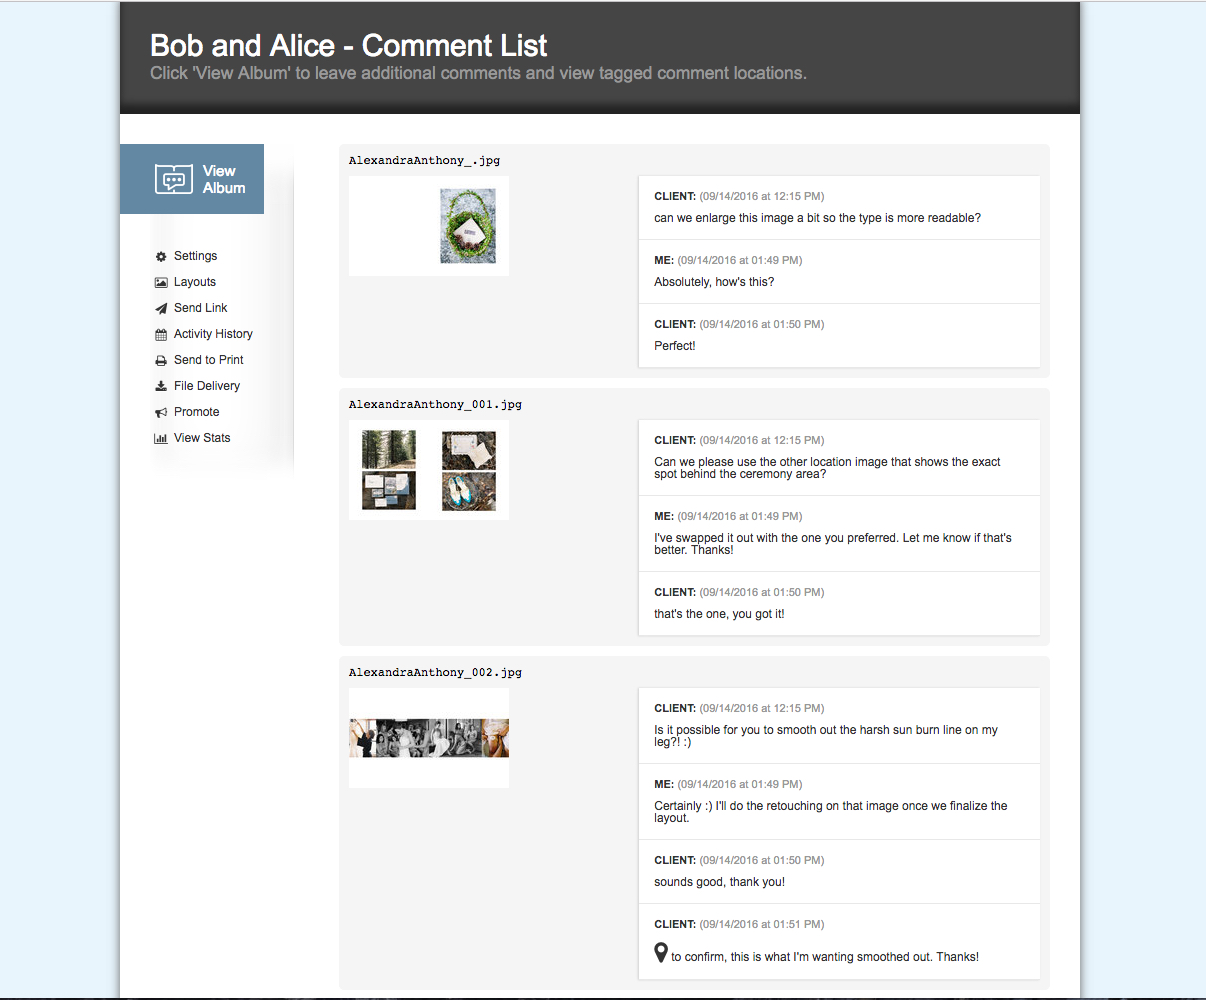 Comment List View